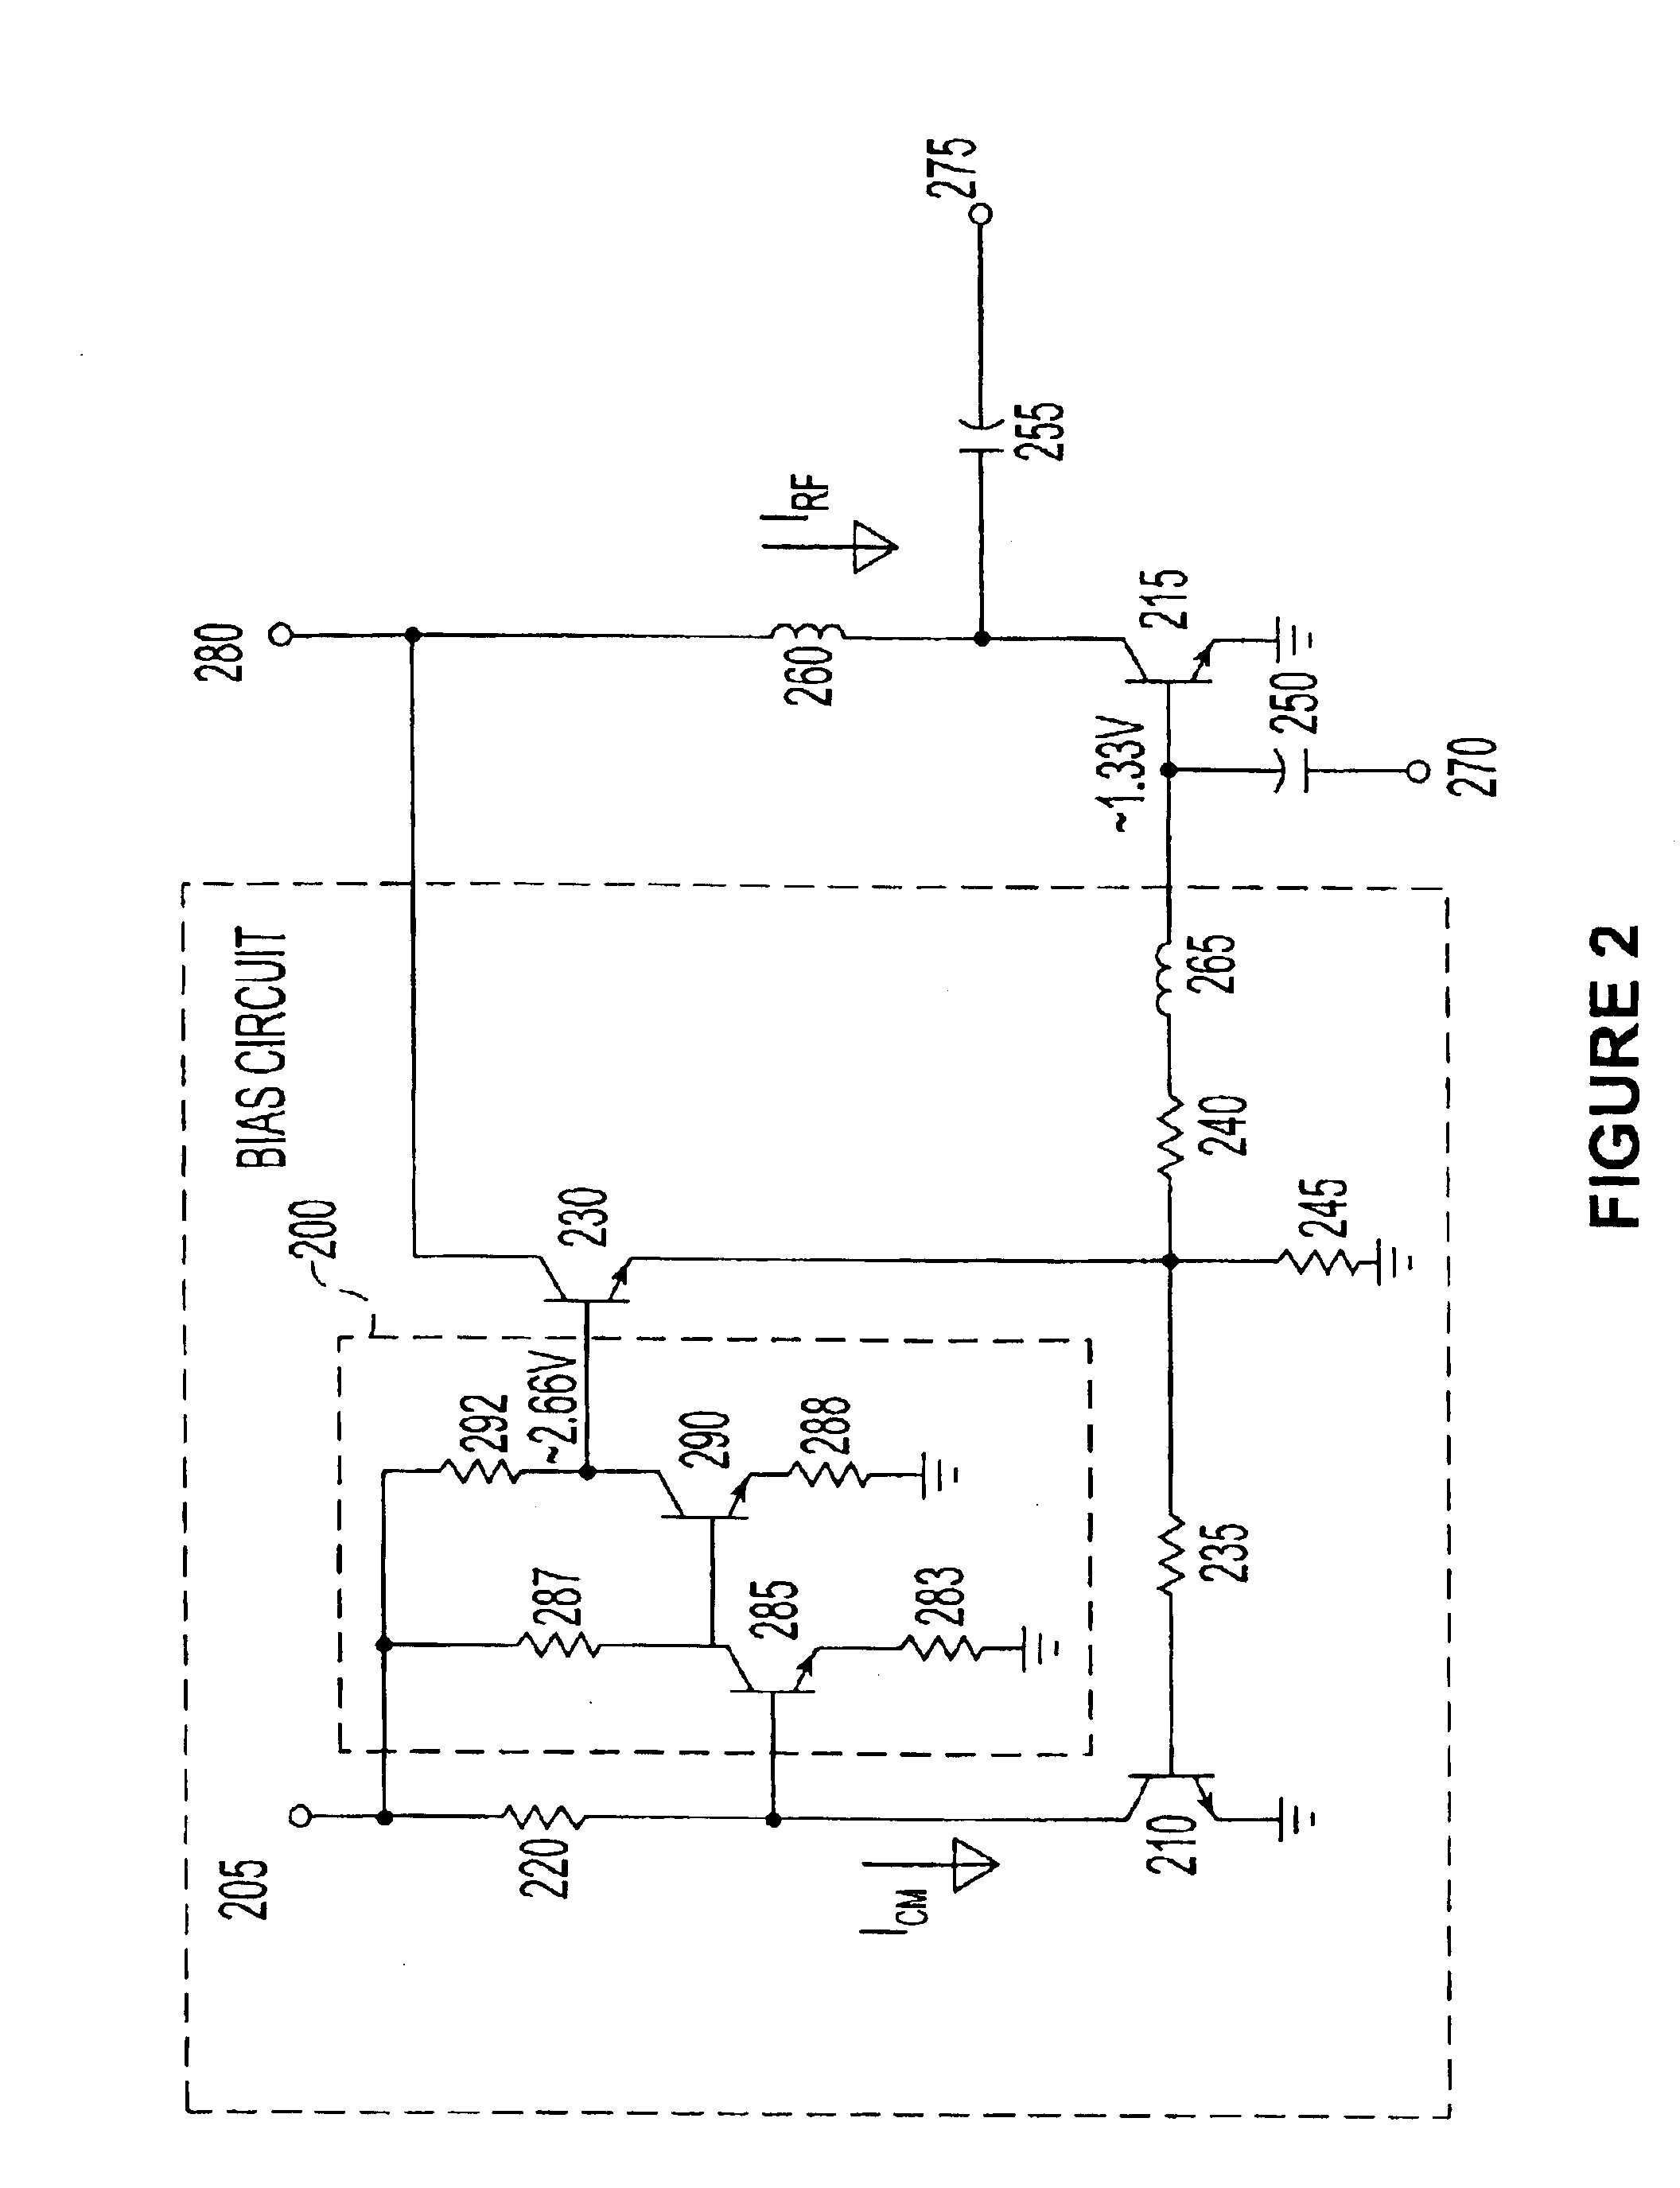 Non Inverting Amplifier Equation Opampinvertingamplifiercircuitpng Stable Circuit 2112x2751